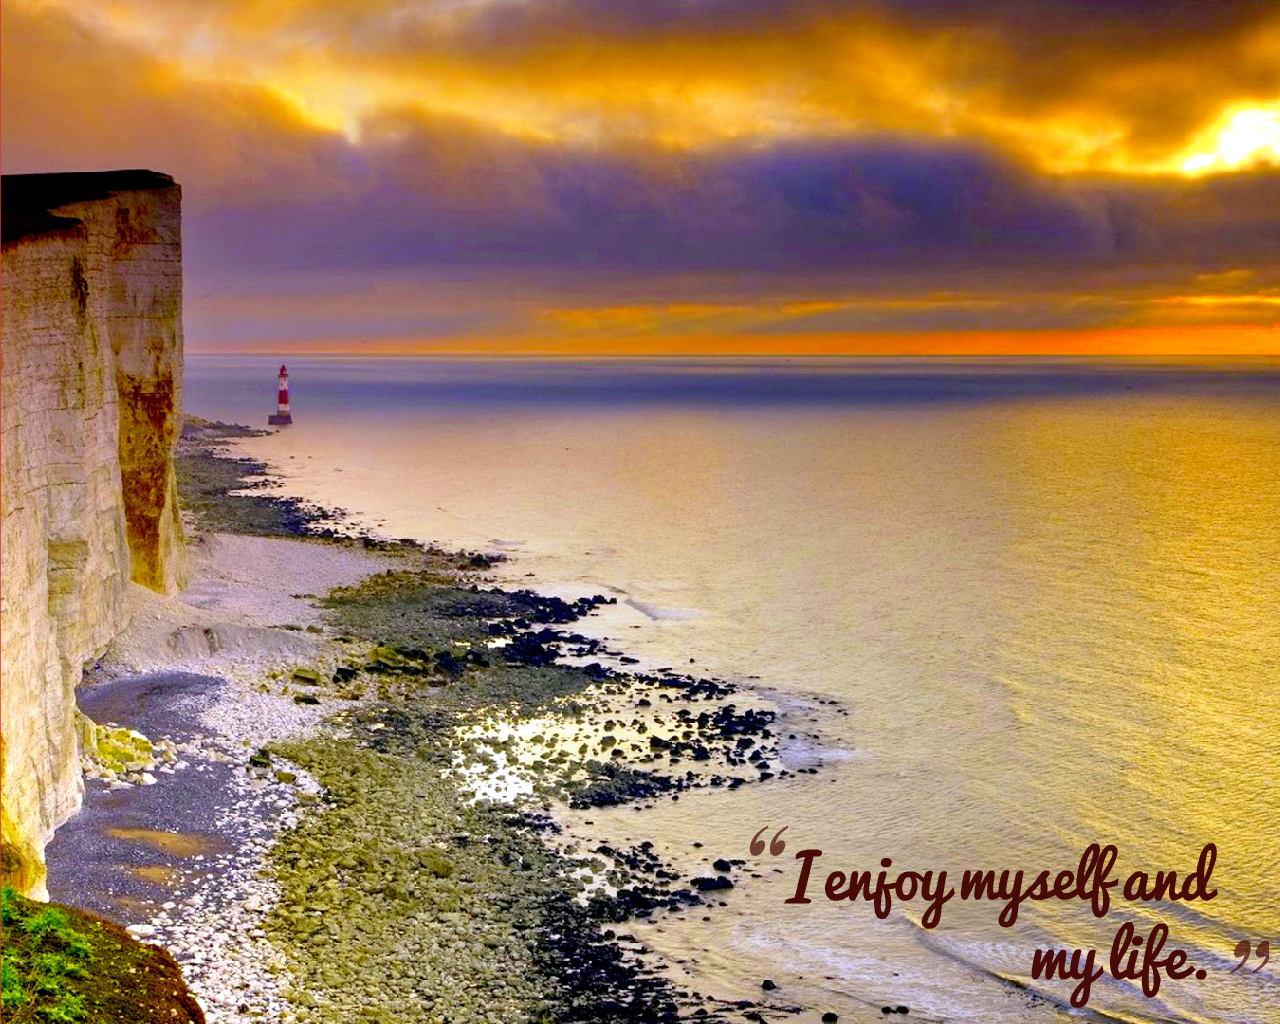 April 2014 Positive Affirmations Wallpapers, Positive Affirmations Wallpapers, Affirmations Wallpapers